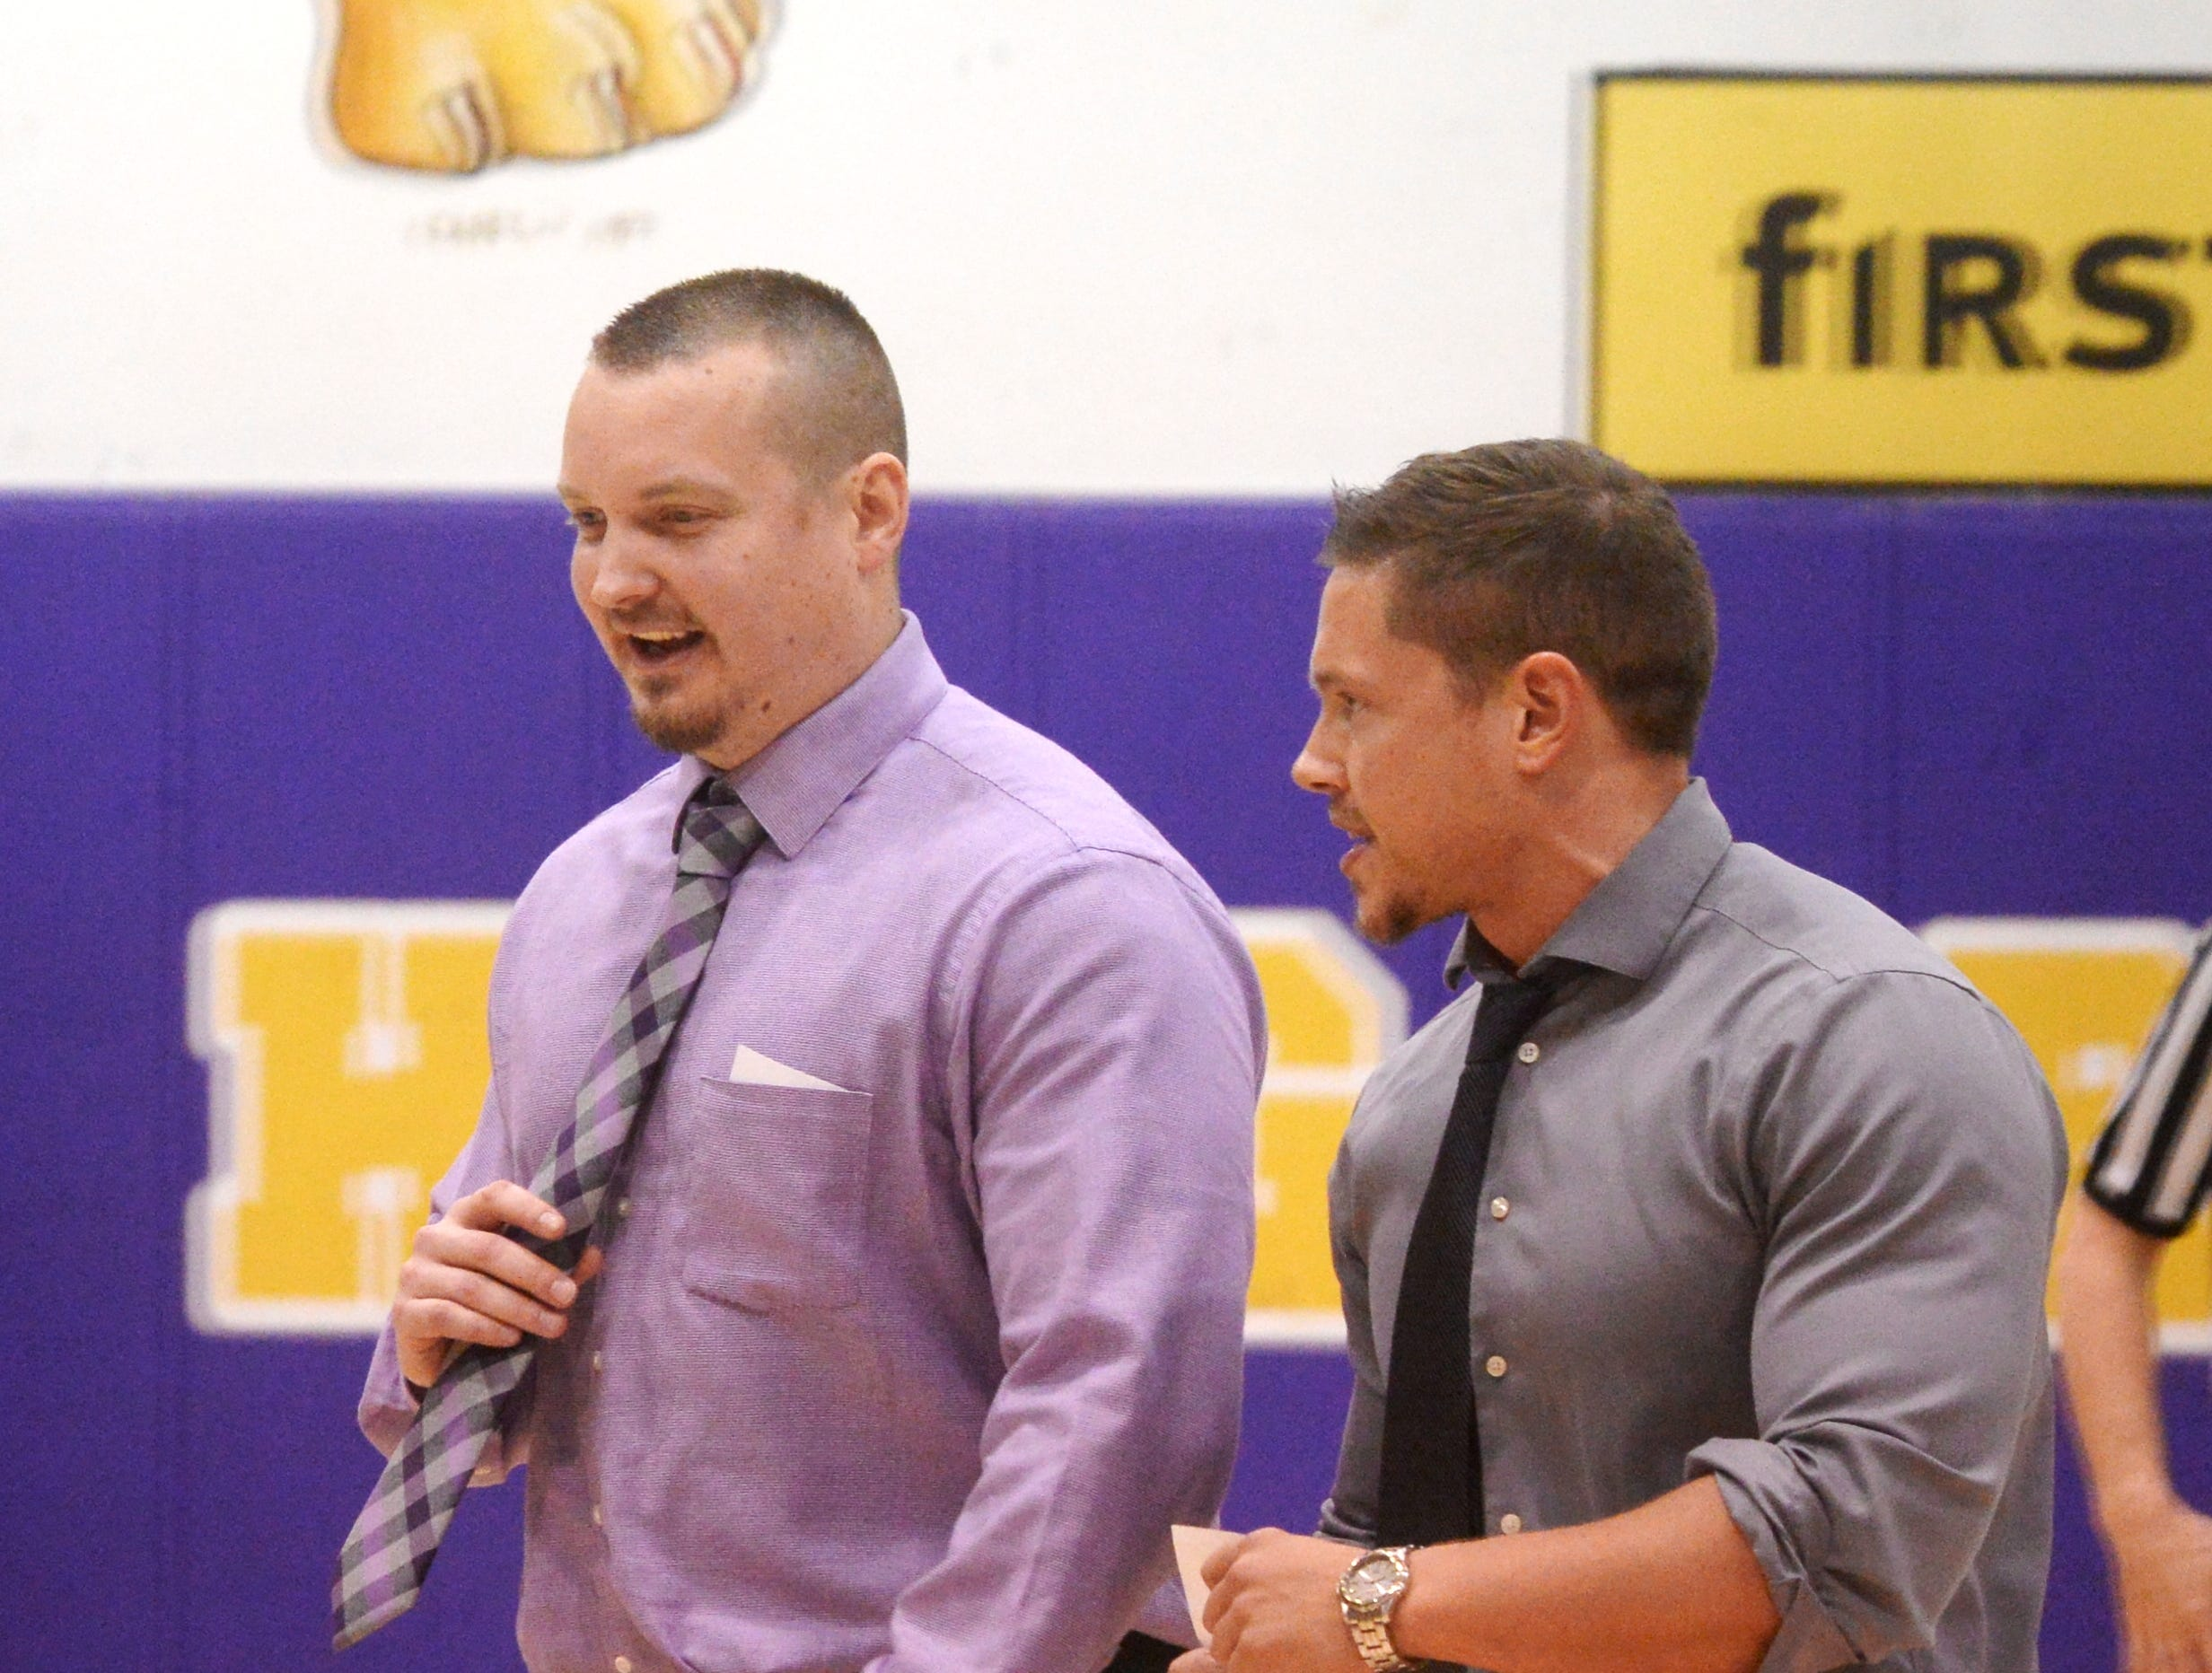 Hagerstown boys basketball coach Chad Romack and assistant Chandler Cross during the Wayne County boys basketball championship at Hagerstown Saturday, Jan. 5, 2019. Hagerstown defeated Northeastern 37-35 to win the girls' title, and Northeastern beat Hagerstown 60-49 in the boys championship.